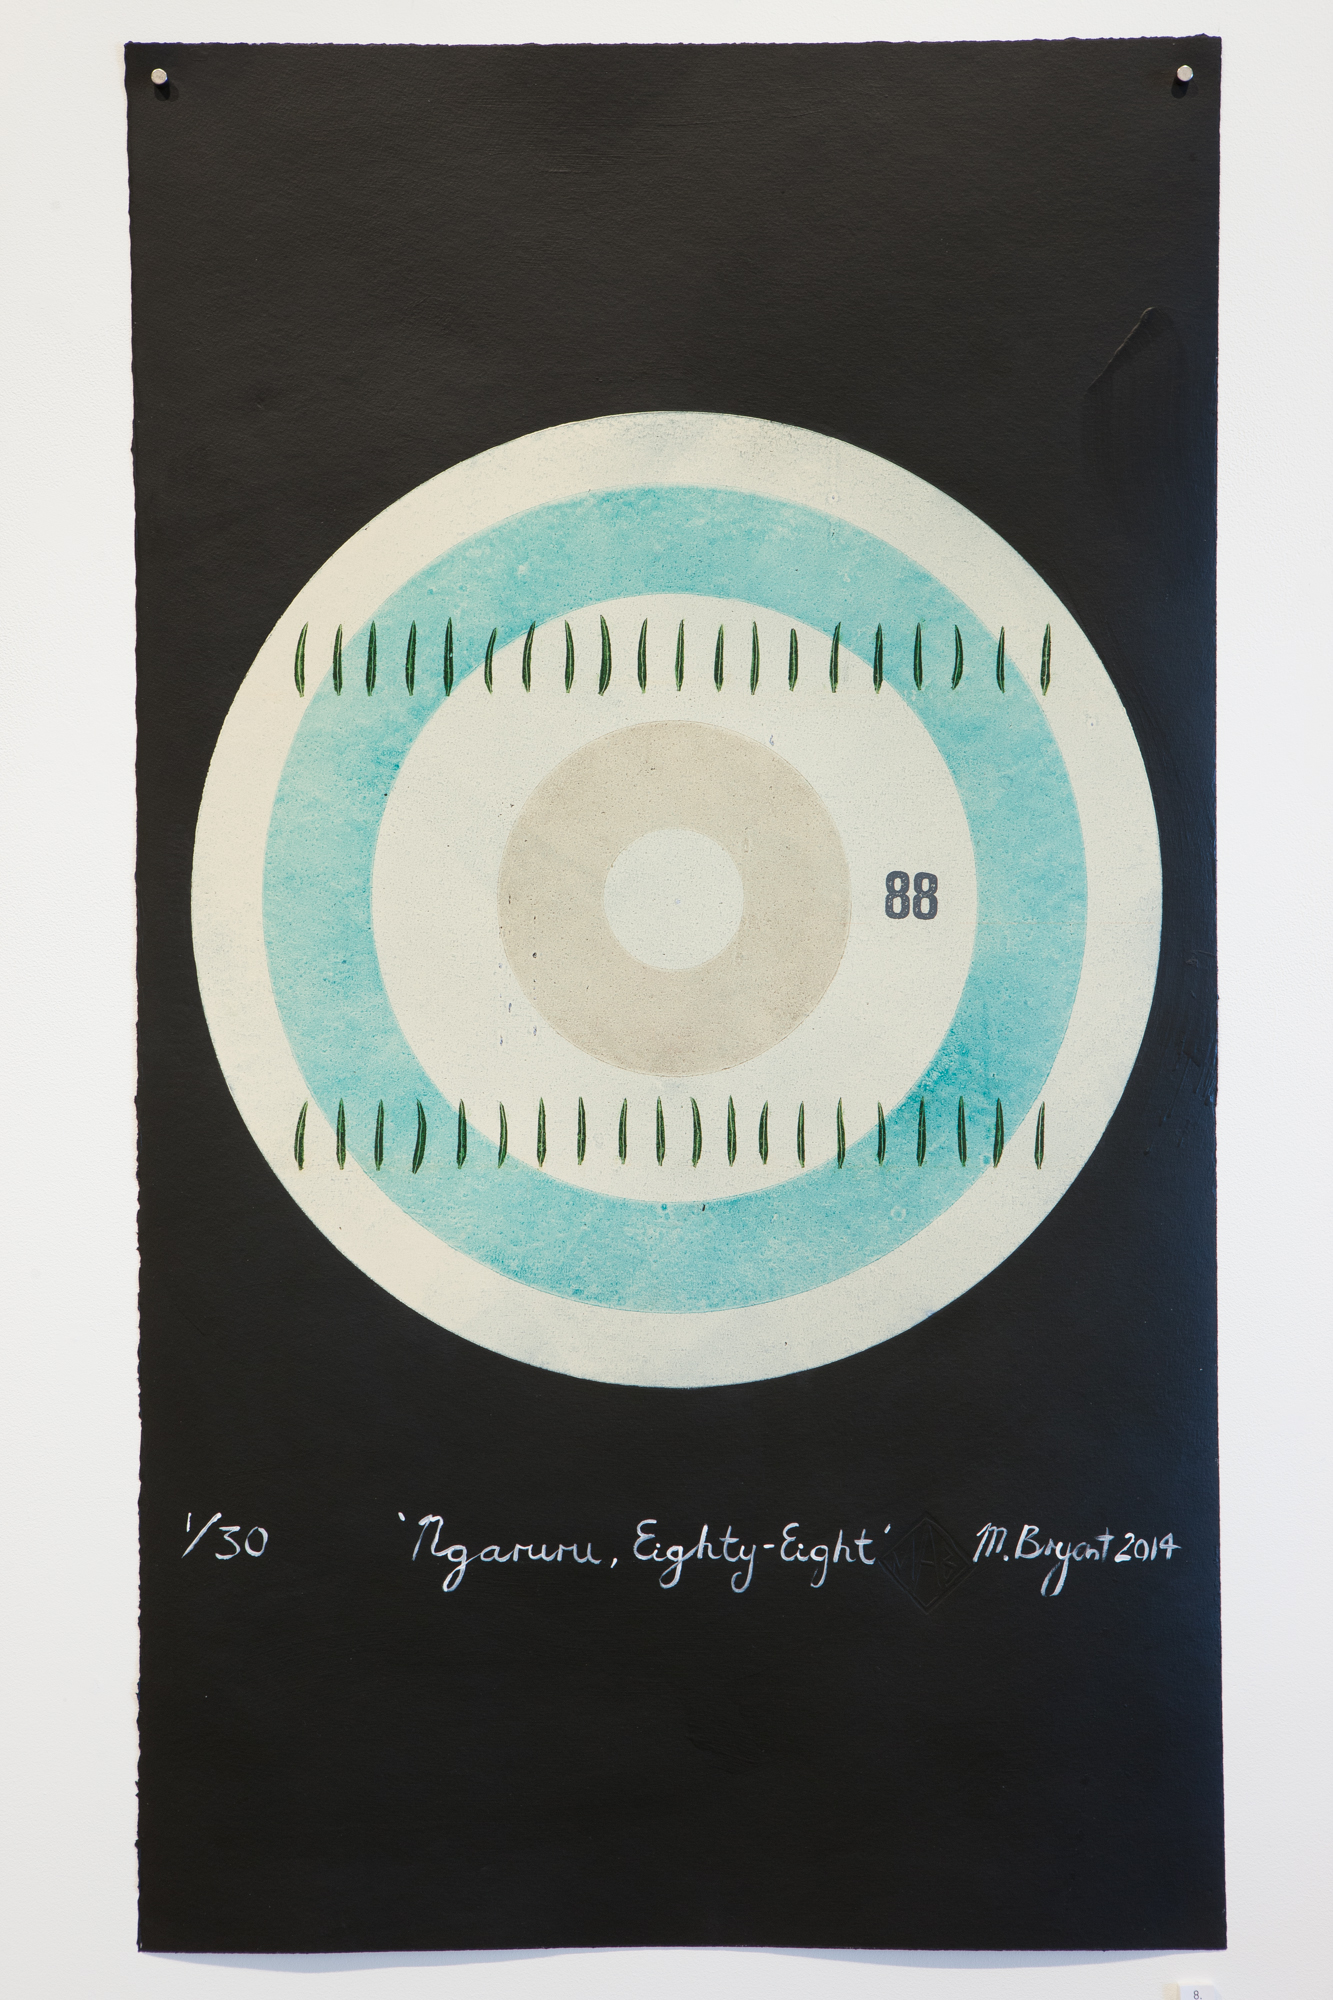 Ngaruru, Eighty-Eight Michele Bryant 2014